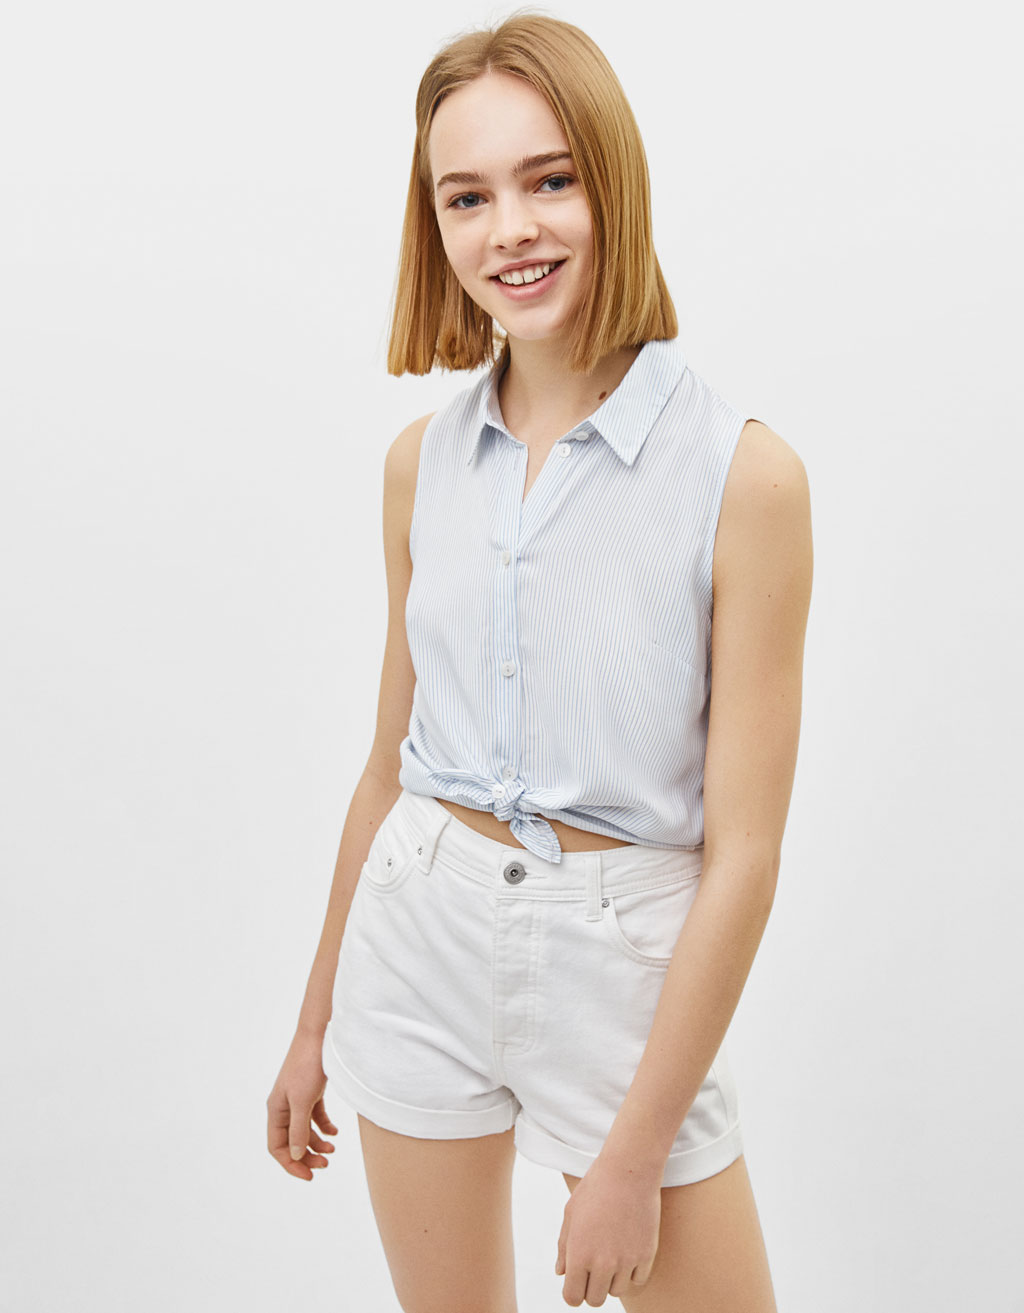 Sleeveless shirt with knot